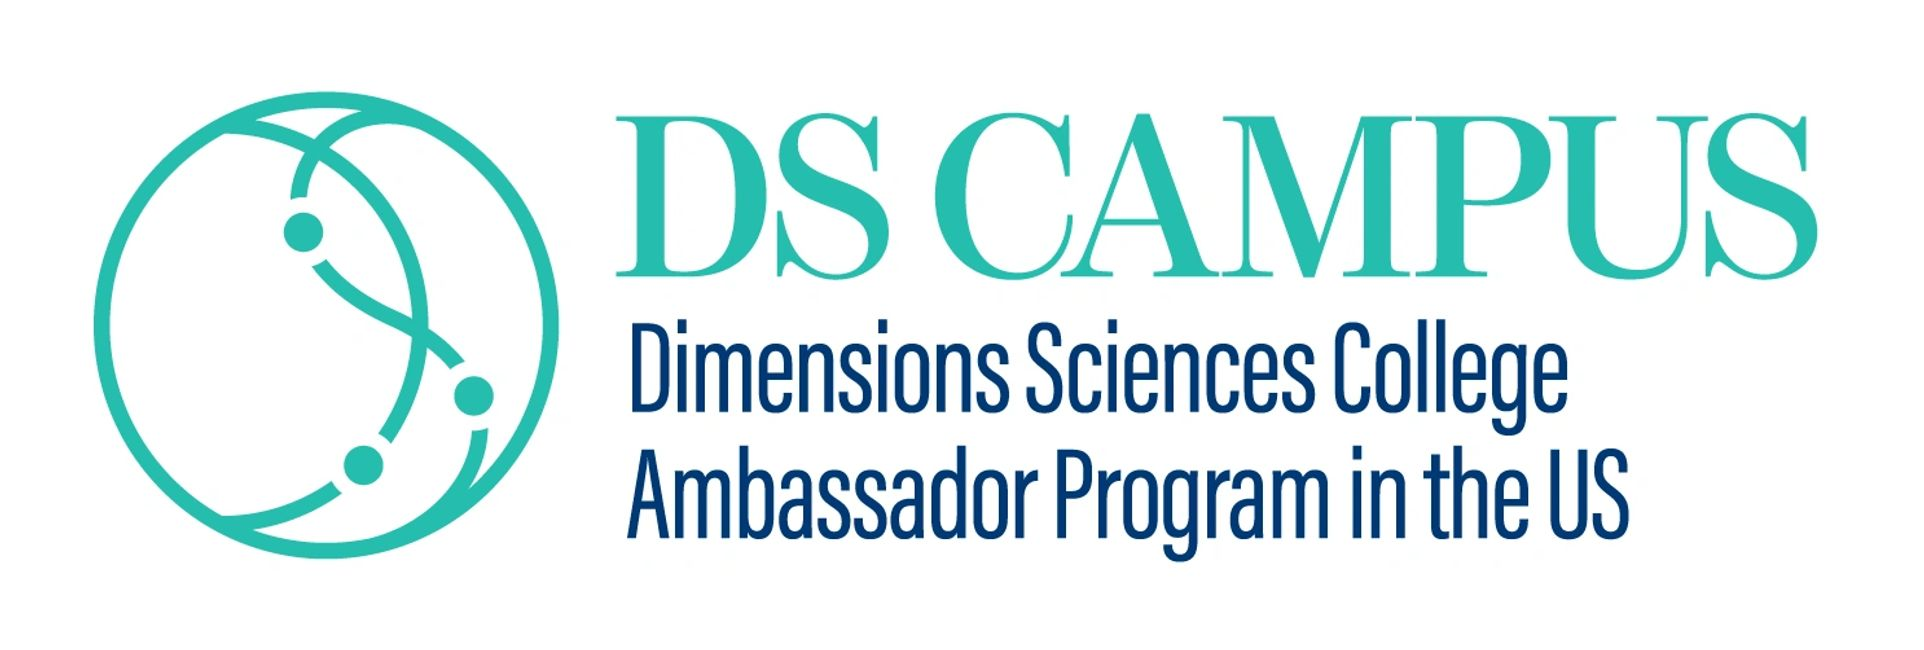 Dimensions Sciences College Ambassador Program in the US